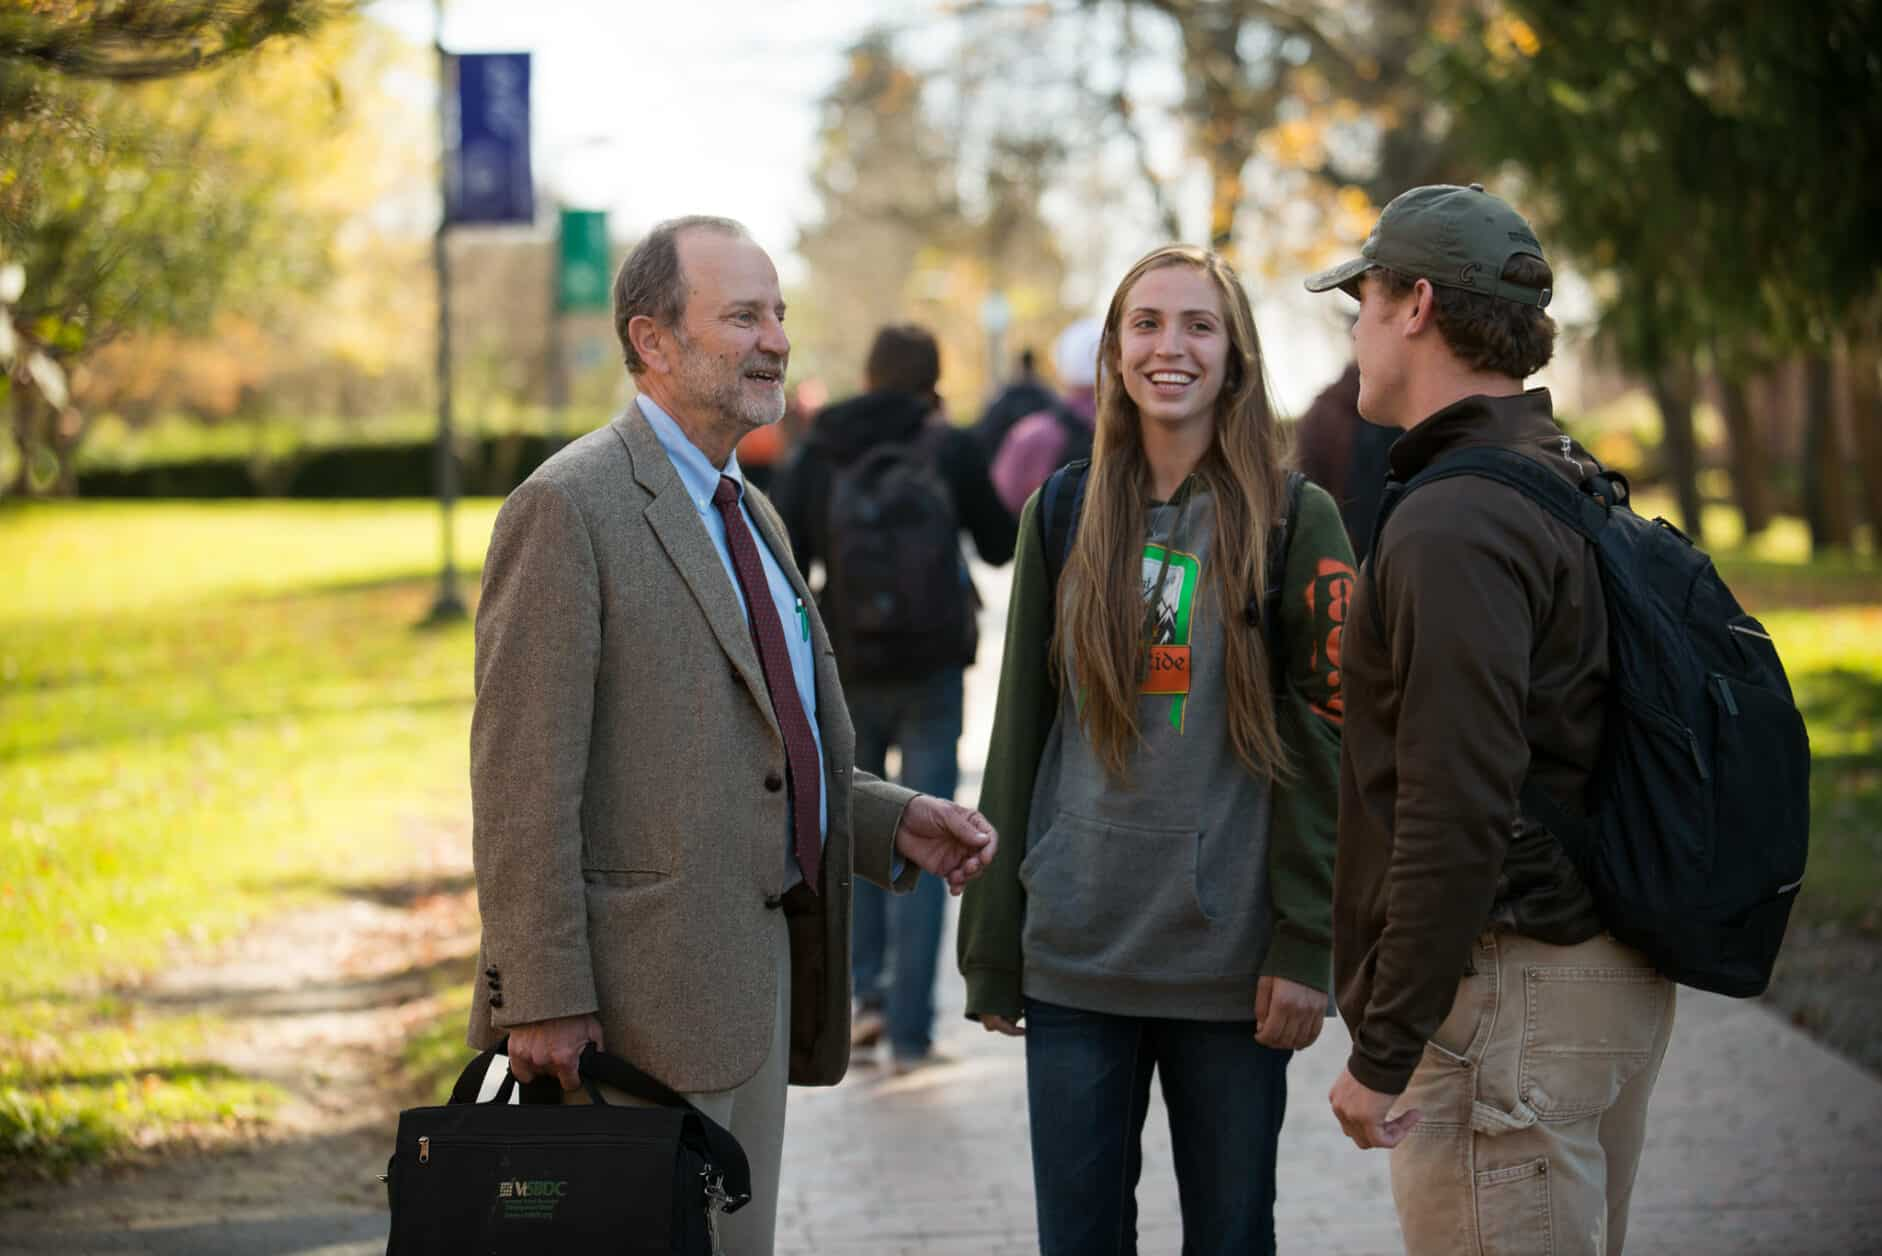 Professor talks with students, faculty, female student, male student, walkway, chatting, Randolph Center campus